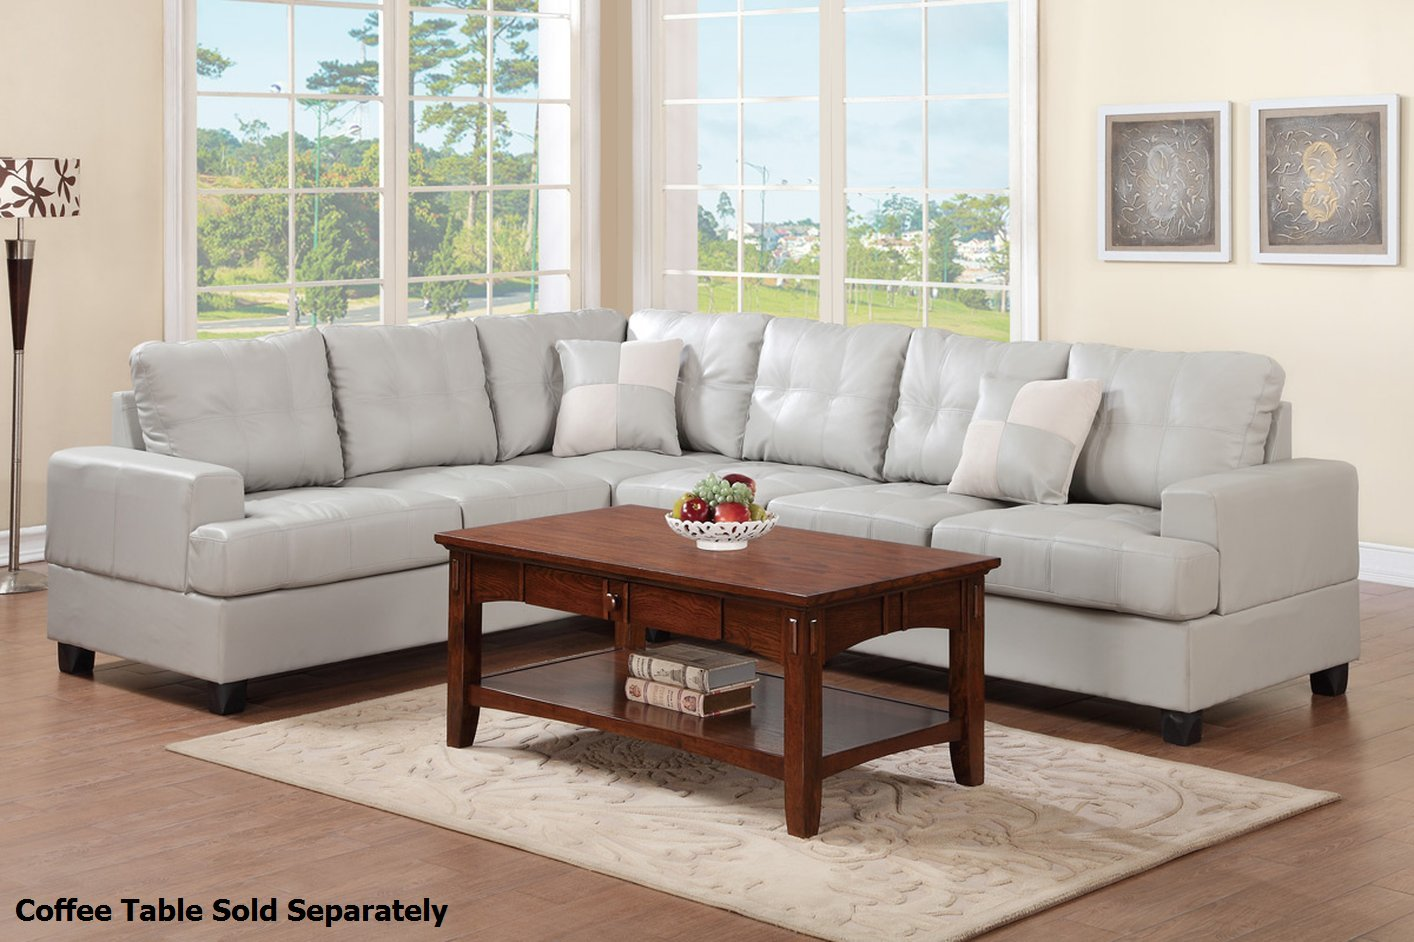 Poundex Pershing F7639 Grey Leather Sectional Sofa Steal